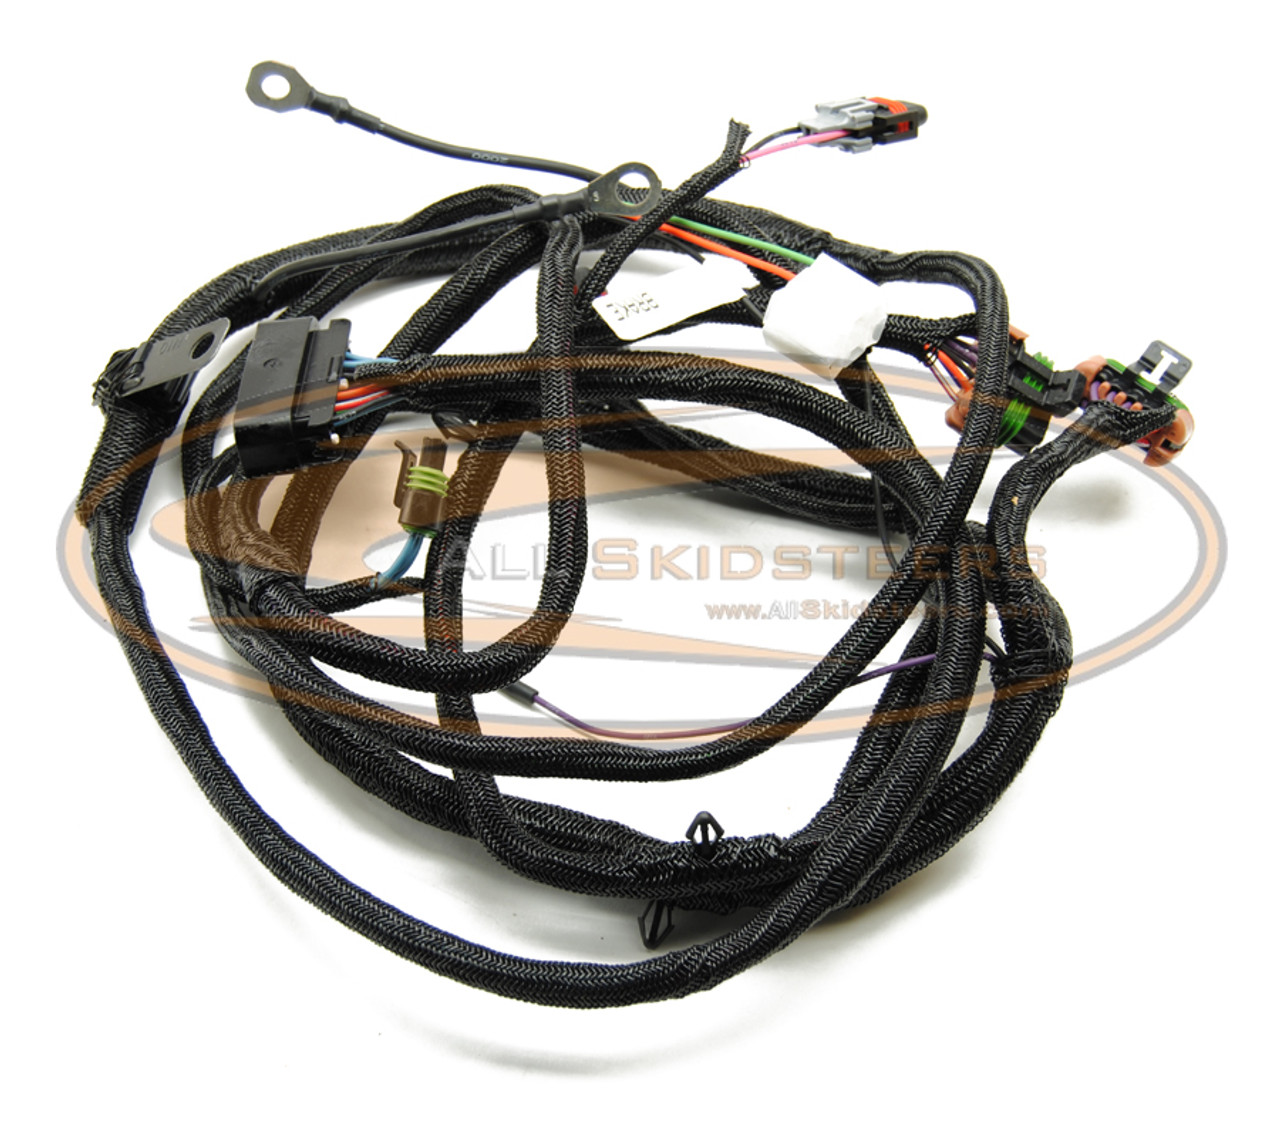 cab wiring harness standard for bobcat skid steer replaces oem 6727178 [ 1280 x 1122 Pixel ]